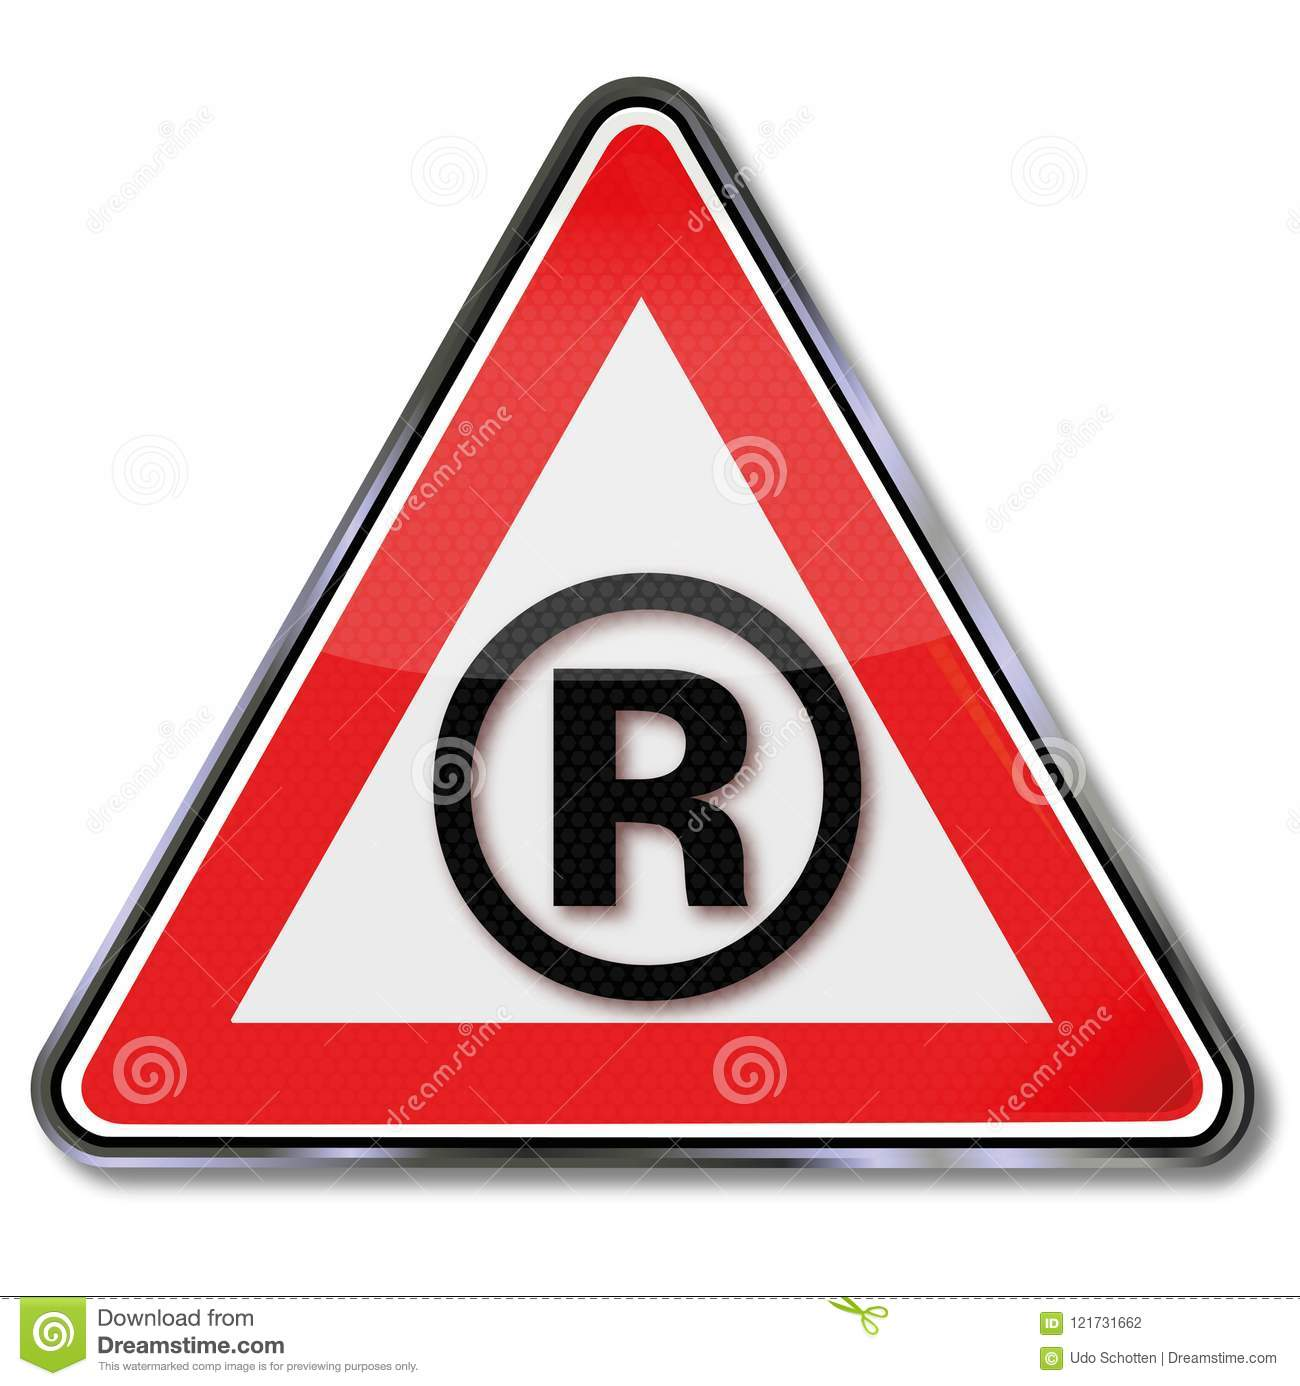 R And Trademark Stock Vector Illustration Of Signs 121731662